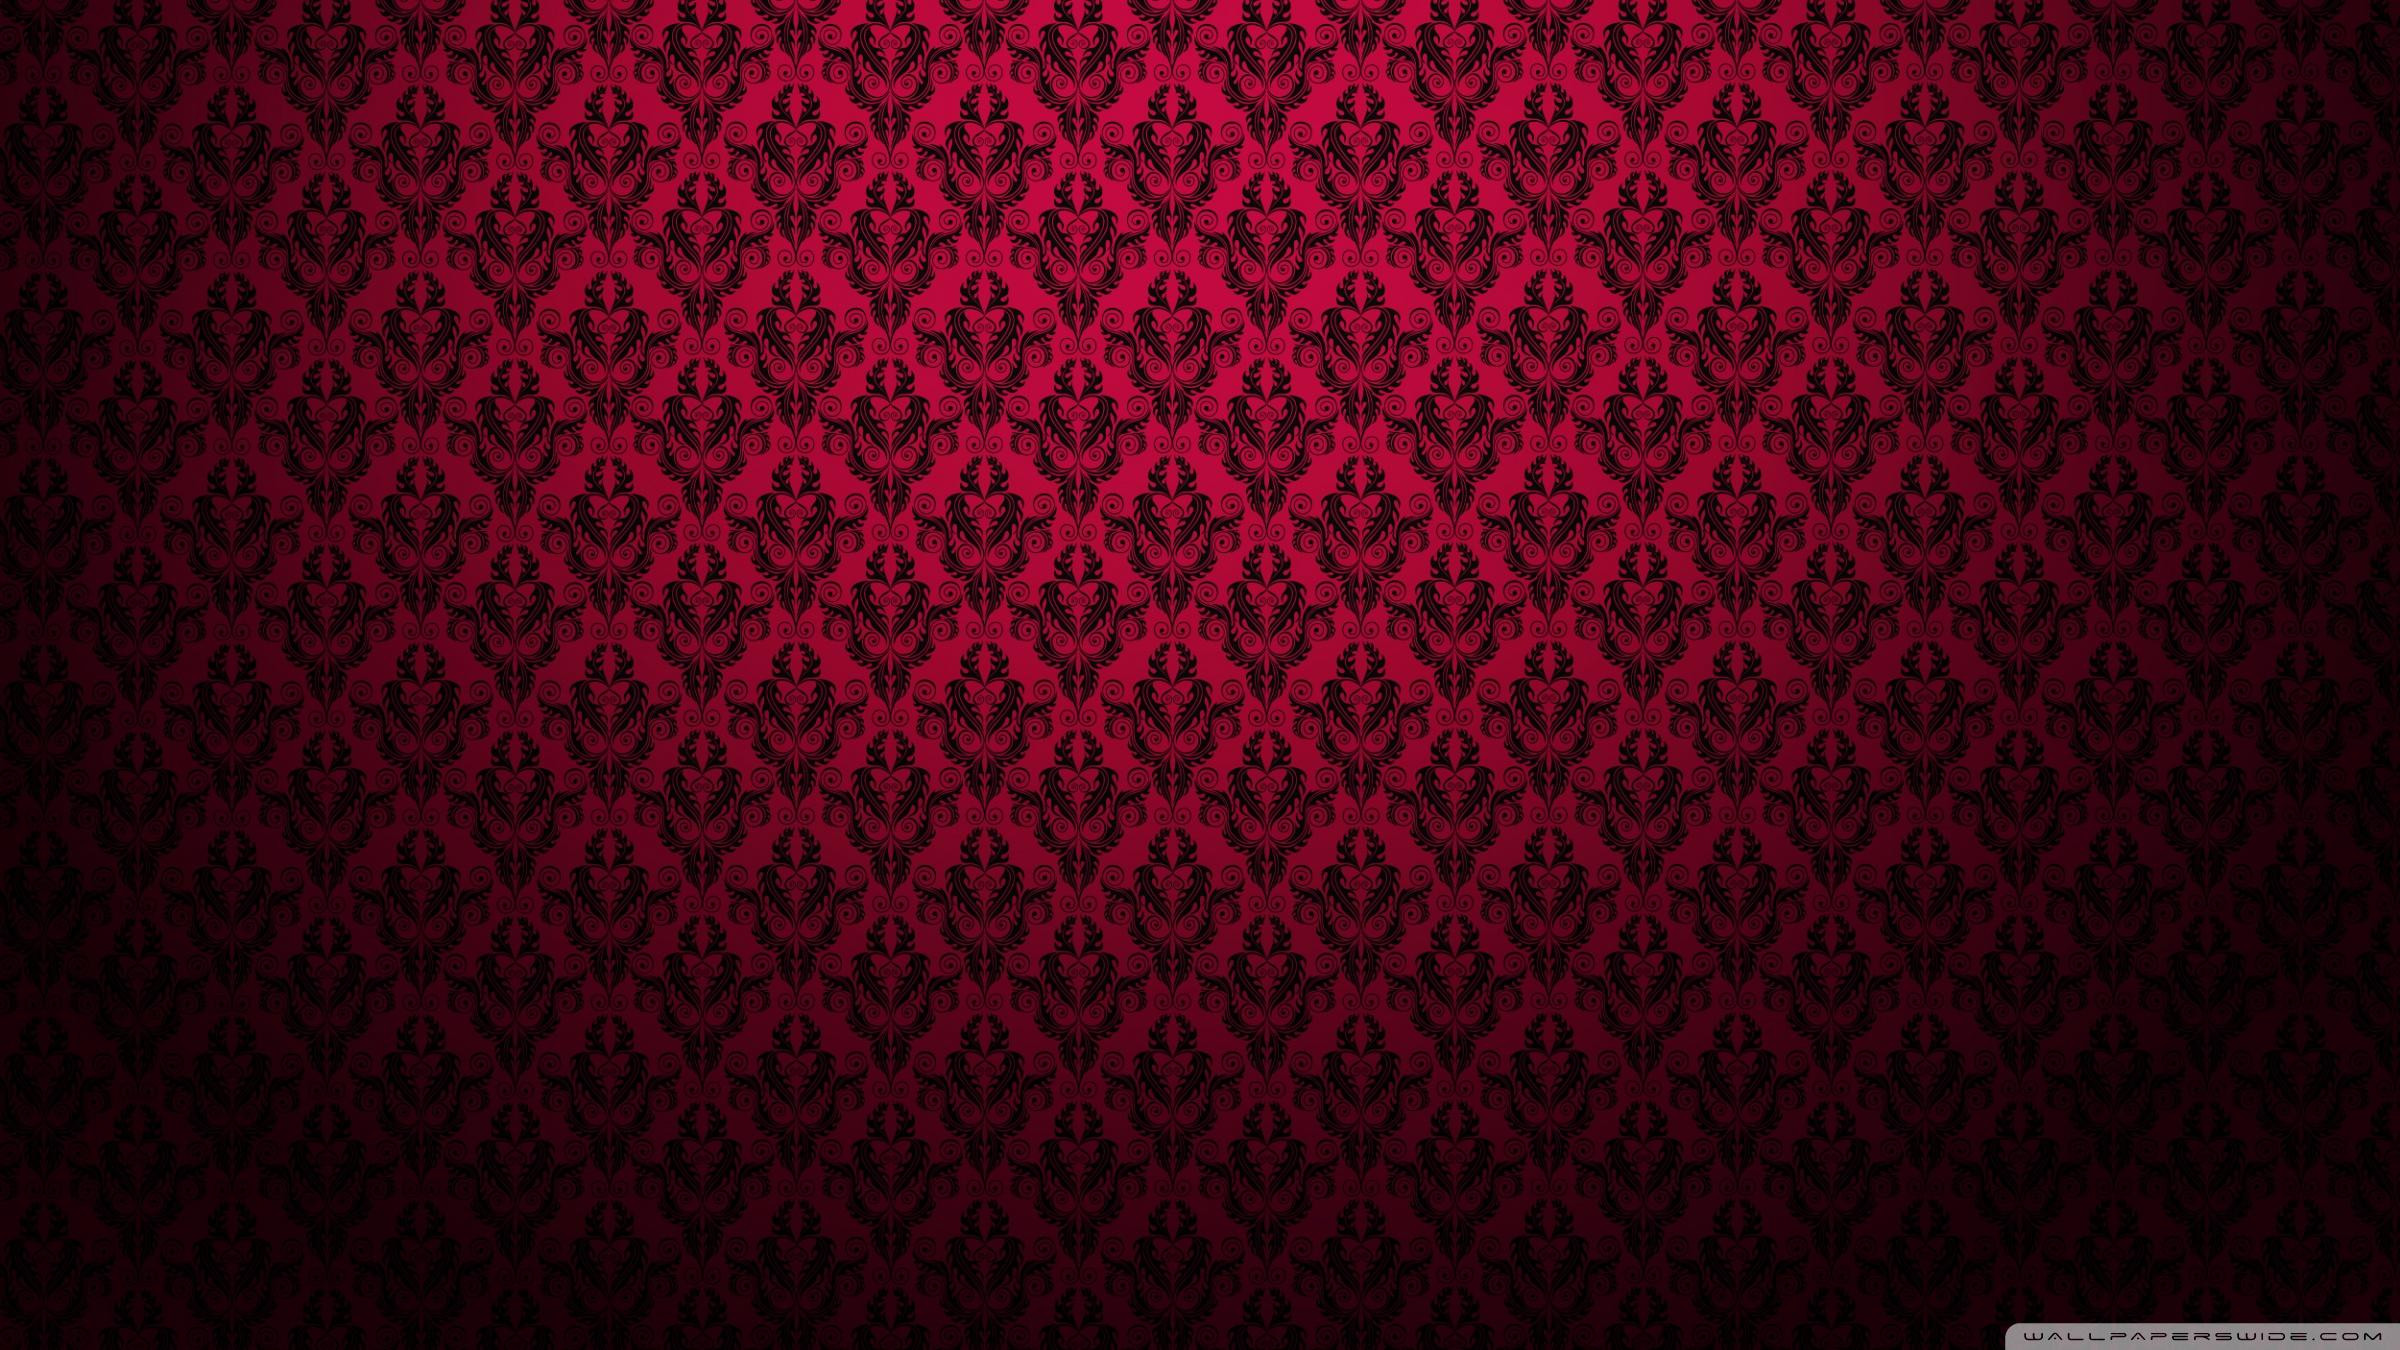 Elegant Black And Red Background on Indian Patterns